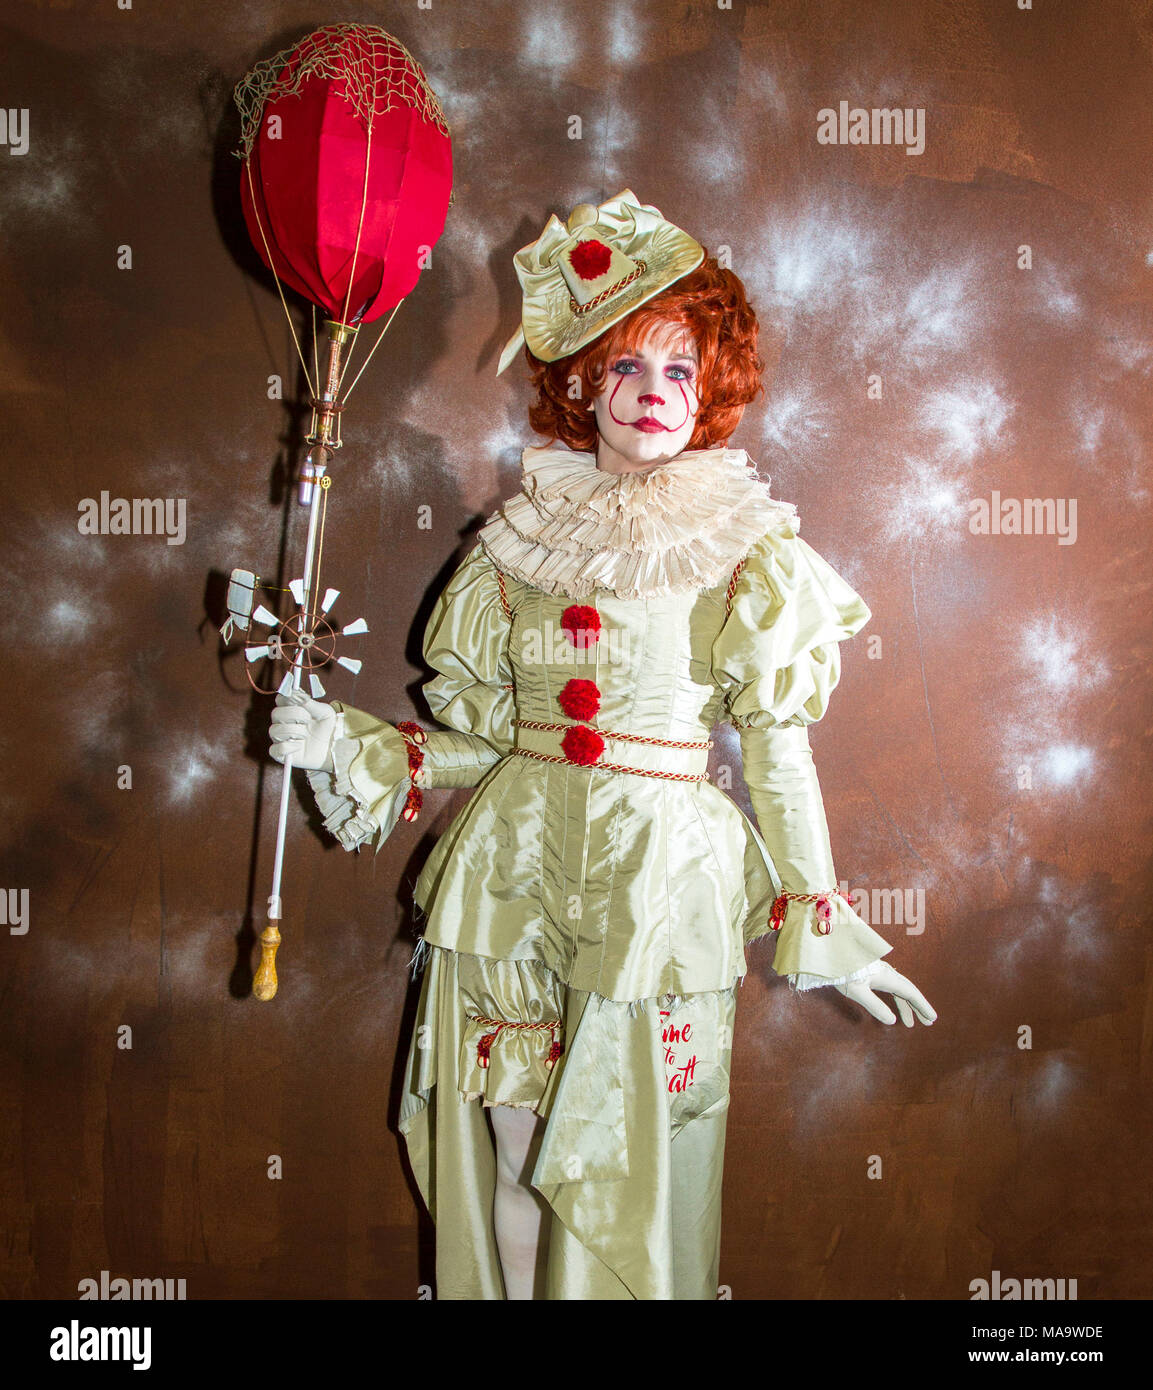 Manchester. 31st March 2018. Julia Scott Post apocalyptic time travellers meet up for a weekend at the asylum as the four day steampunk crossover convention gets under way at the Bowlers Exhibition Centre in Greater Manchester.  Credit: Cernan Elias/Alamy Live News Stock Photo